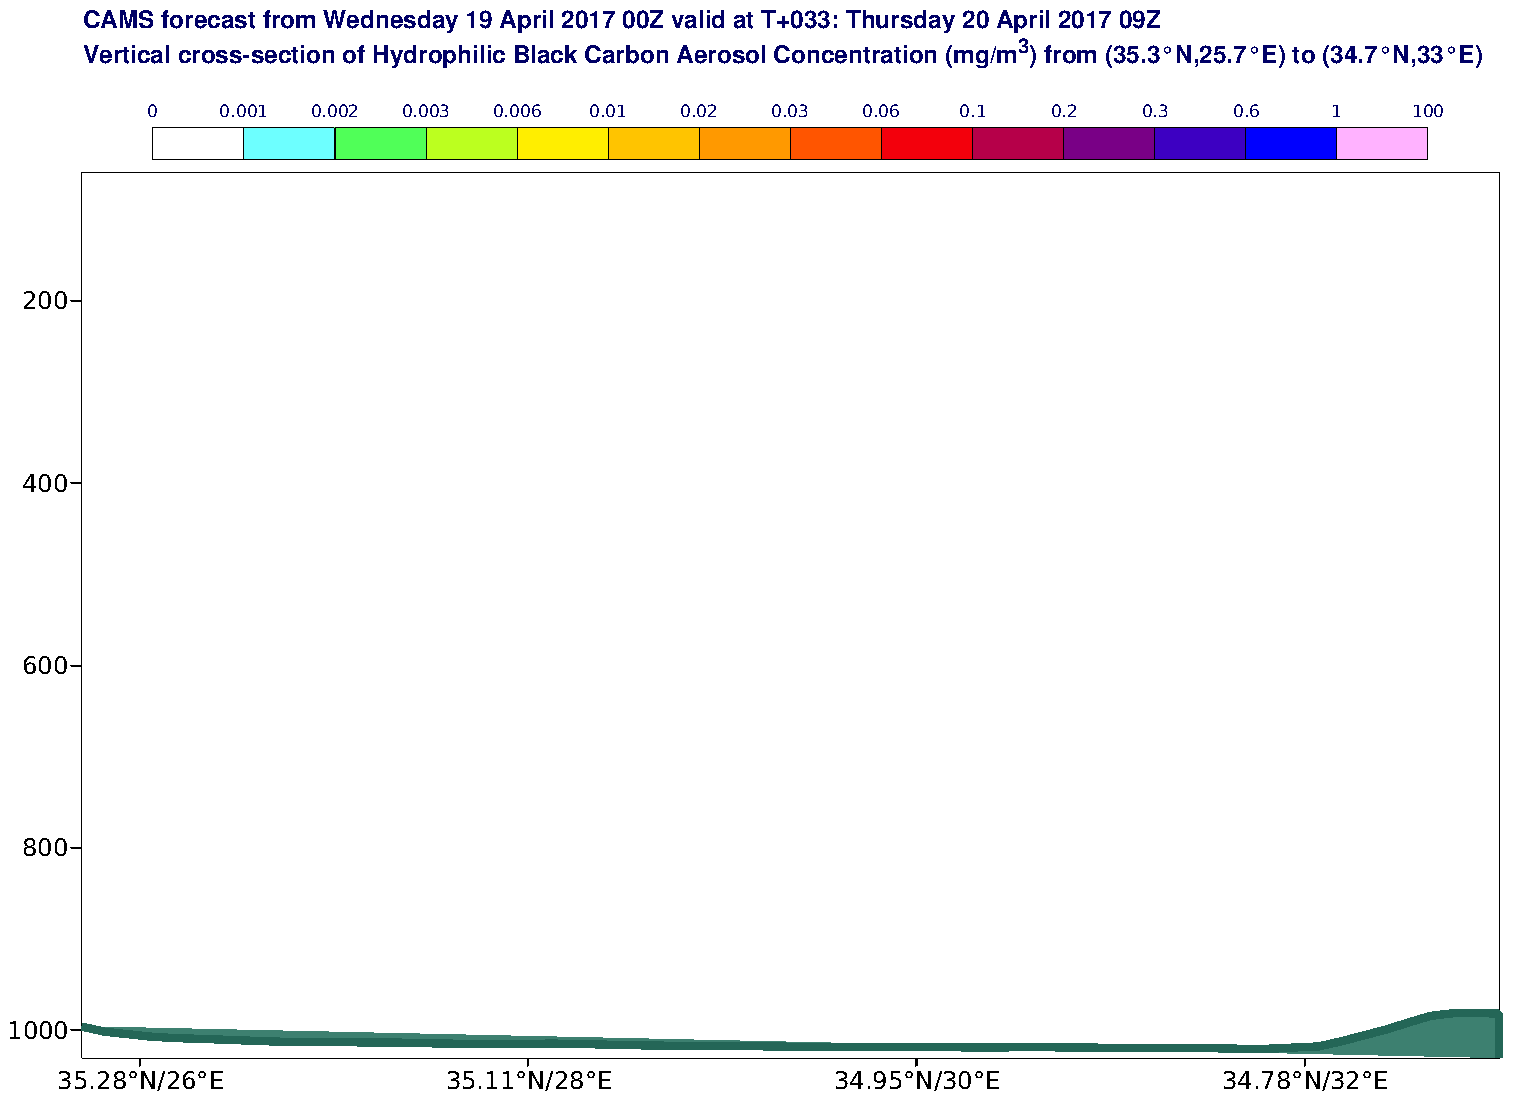 Vertical cross-section of Hydrophilic Black Carbon Aerosol Concentration (mg/m3) valid at T33 - 2017-04-20 09:00